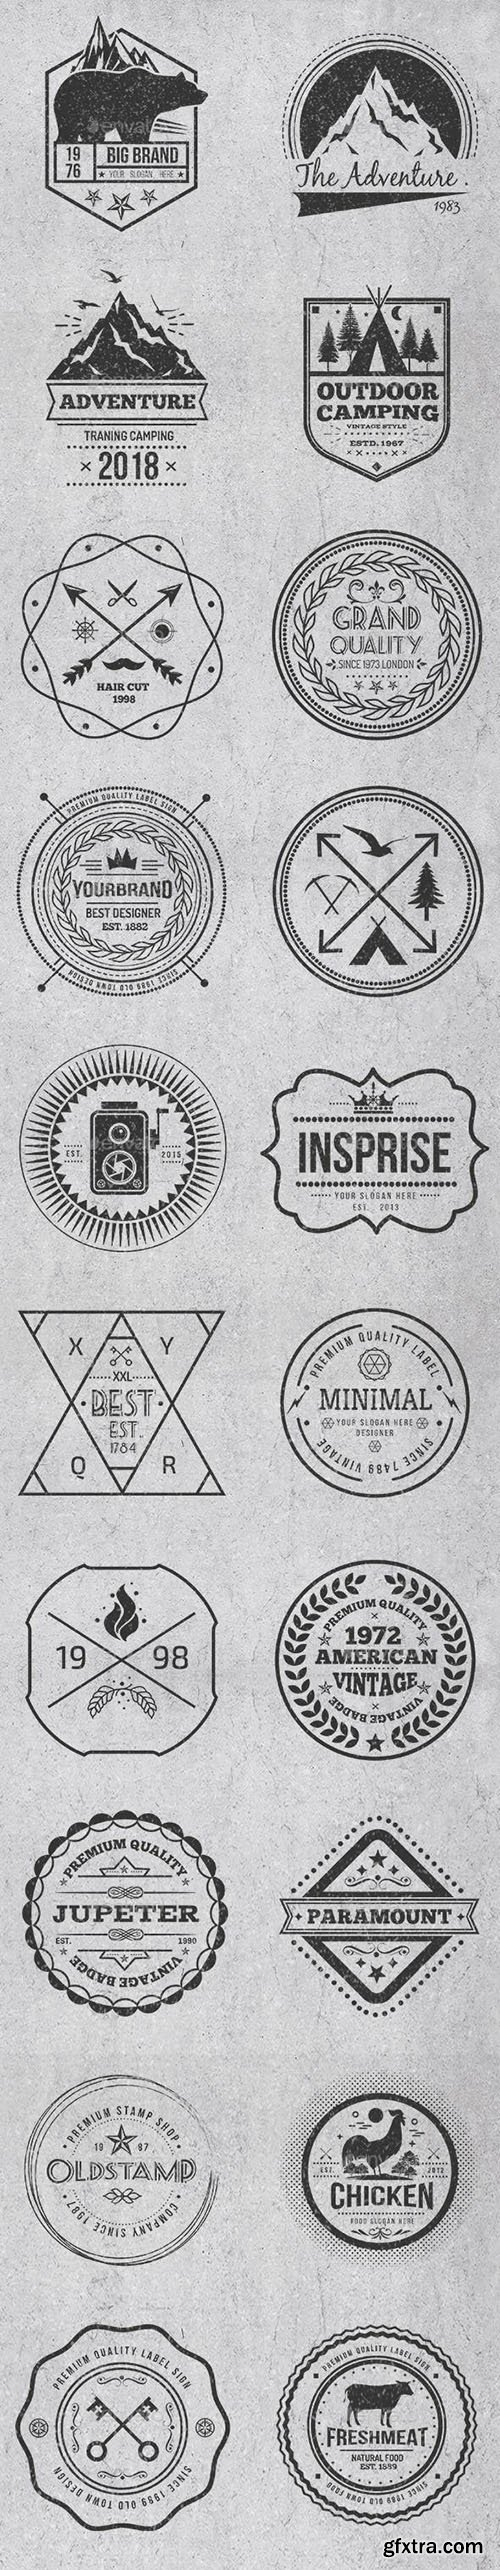 Vintage Style Badges and Logos Vol 4 17514983